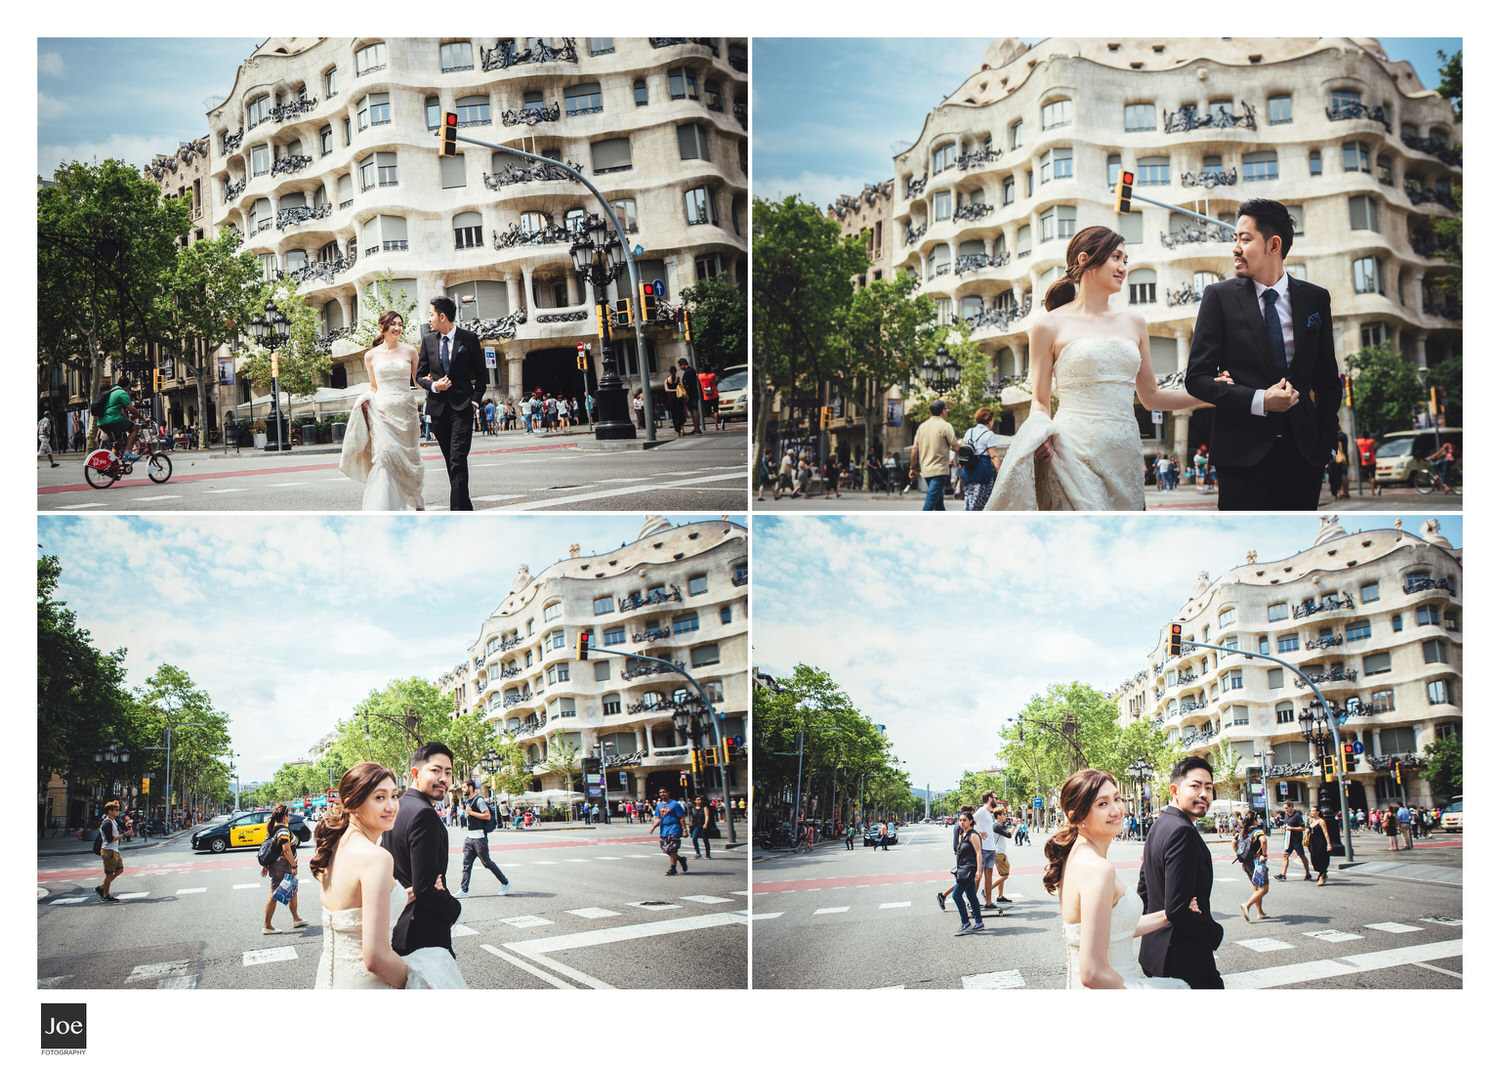 joe-fotography-33-barcelona-la-pedrera-pre-wedding-liwei.jpg